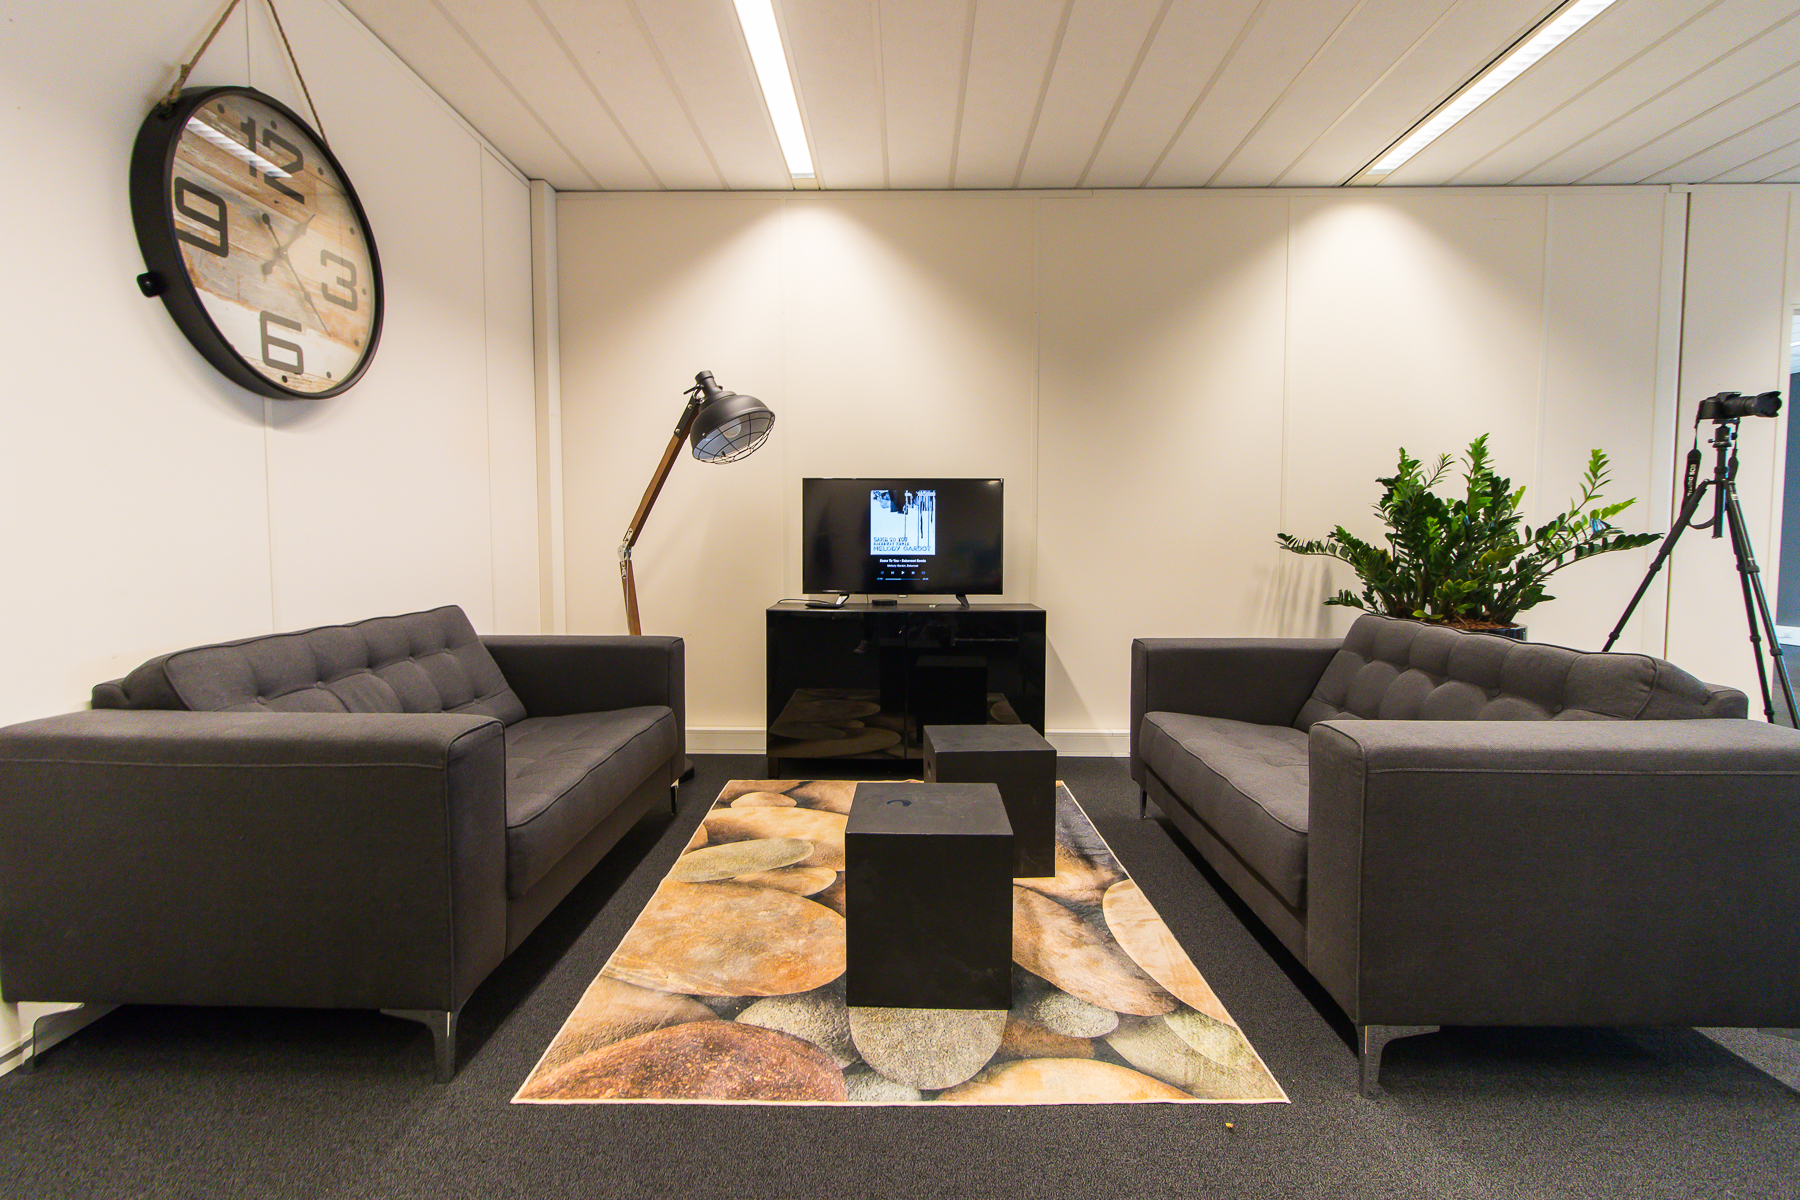 Impression of an office in the office building